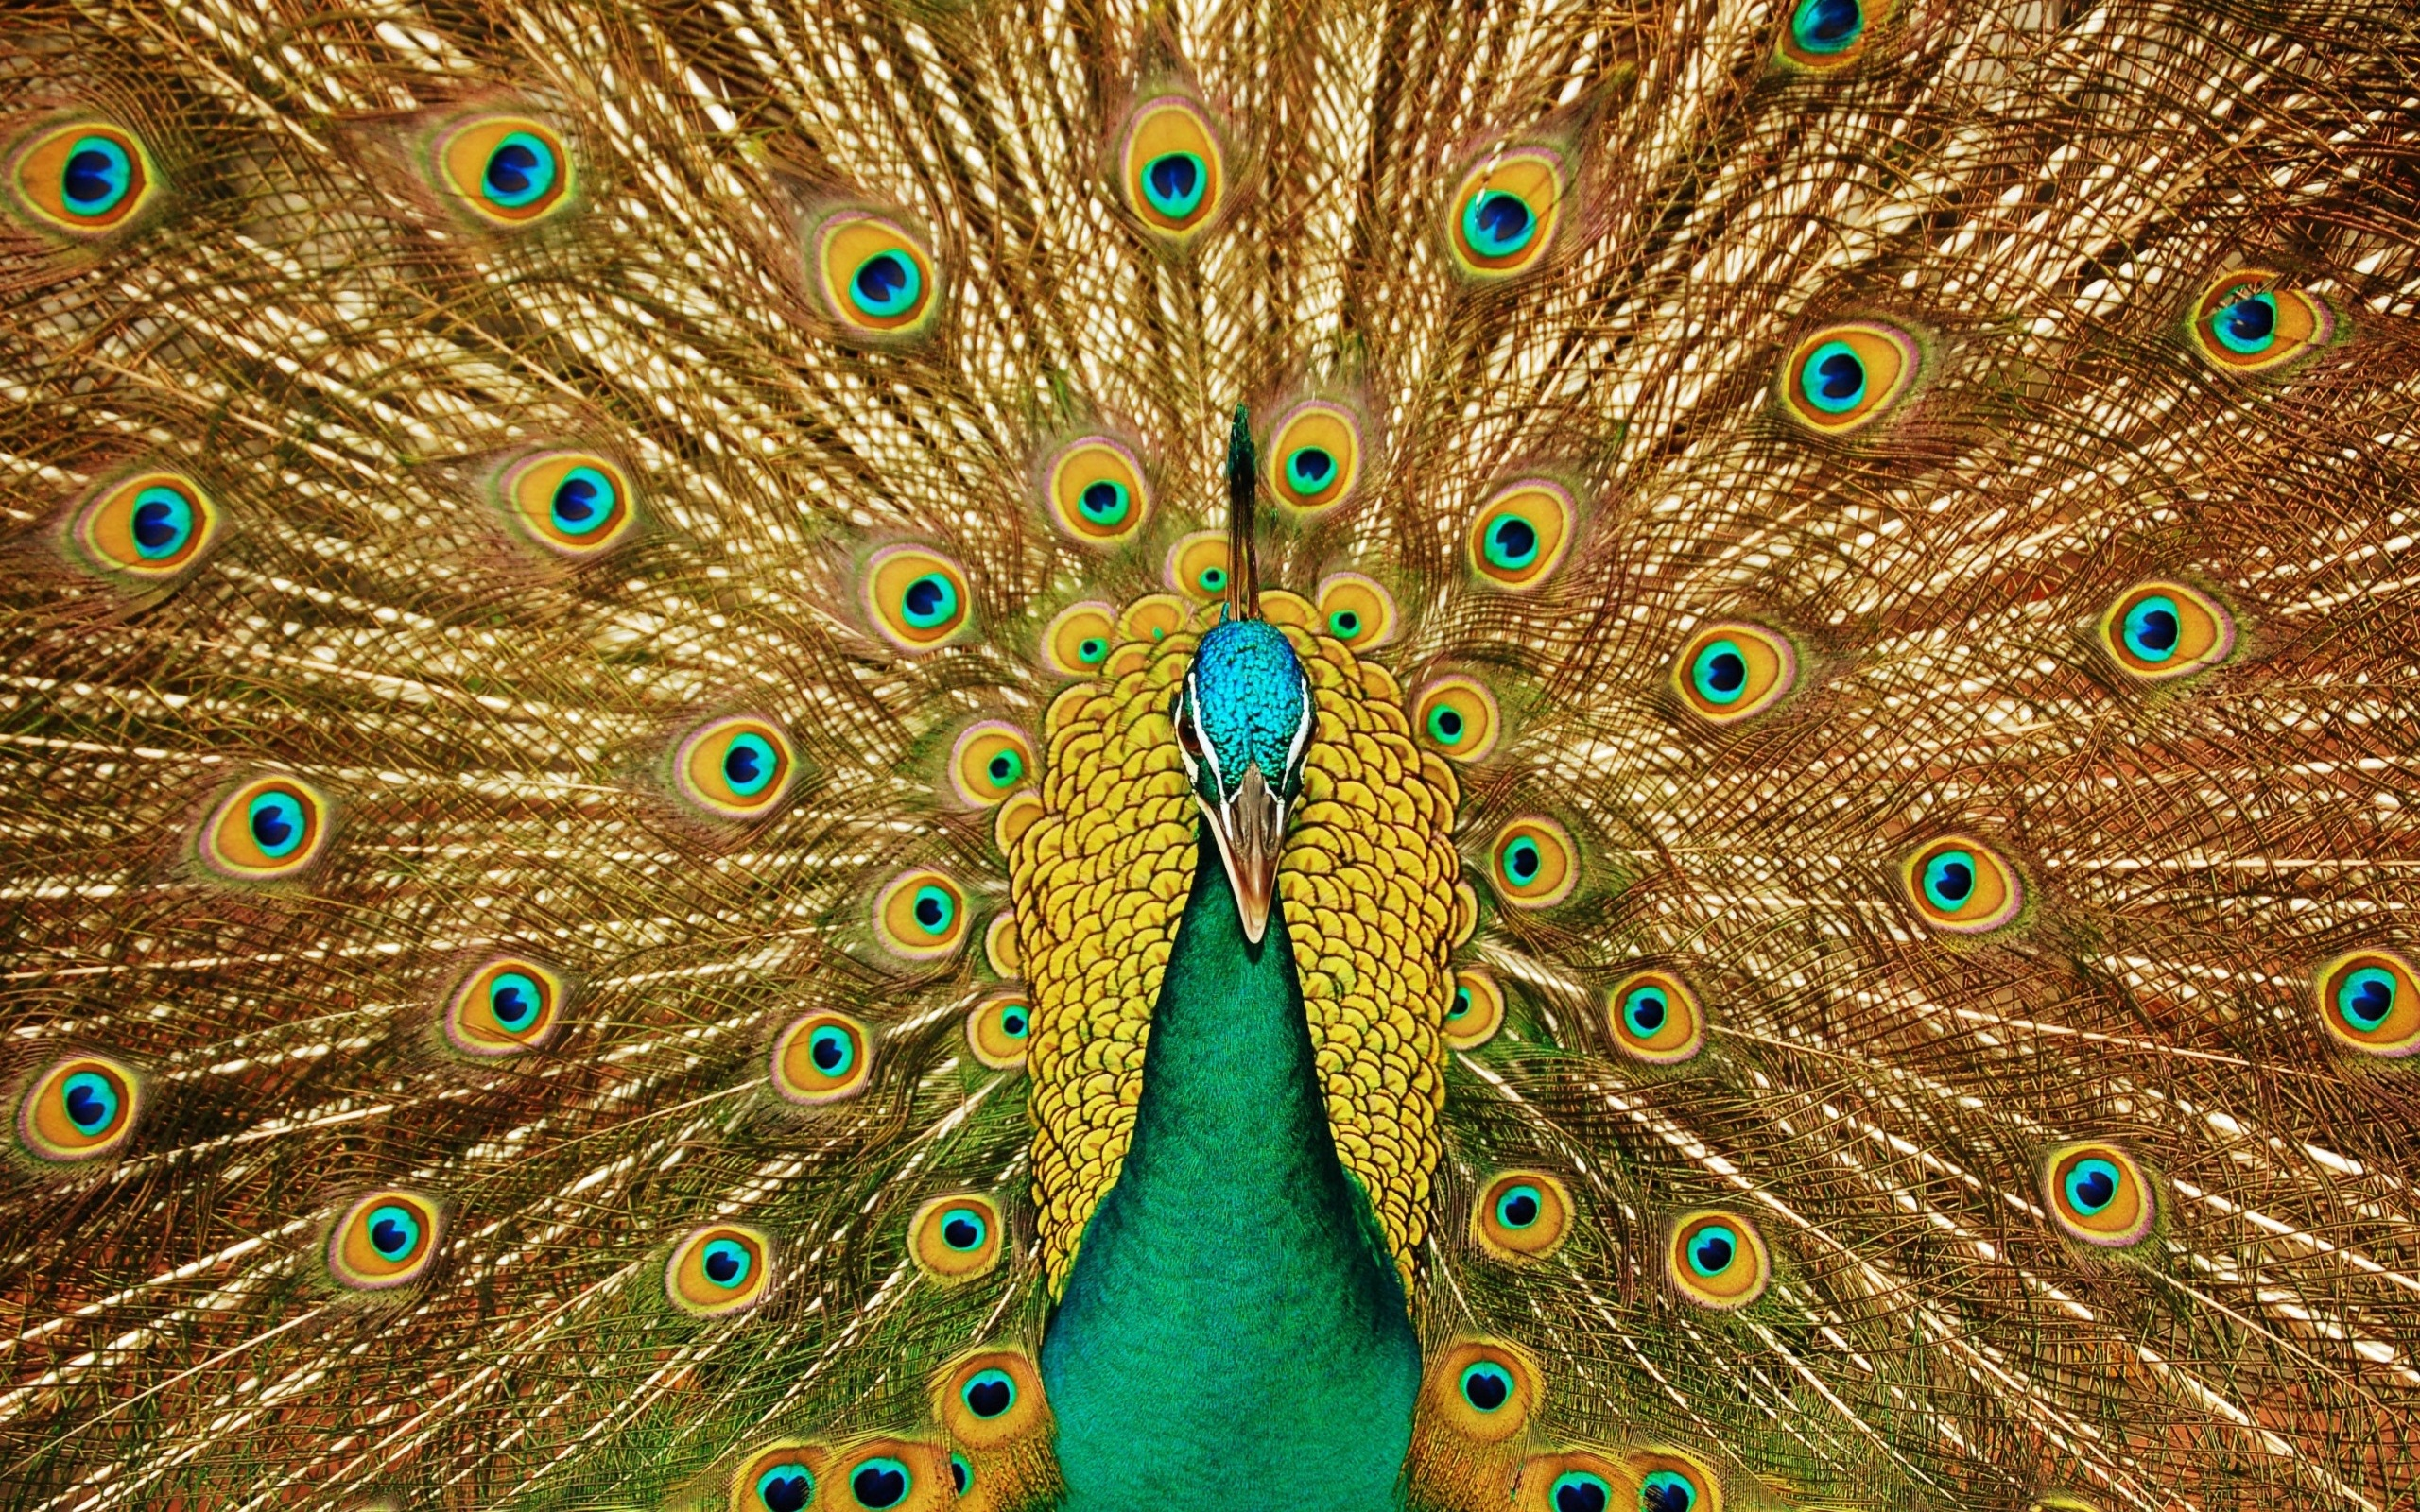 136 peacock hd wallpapers background images wallpaper abyss